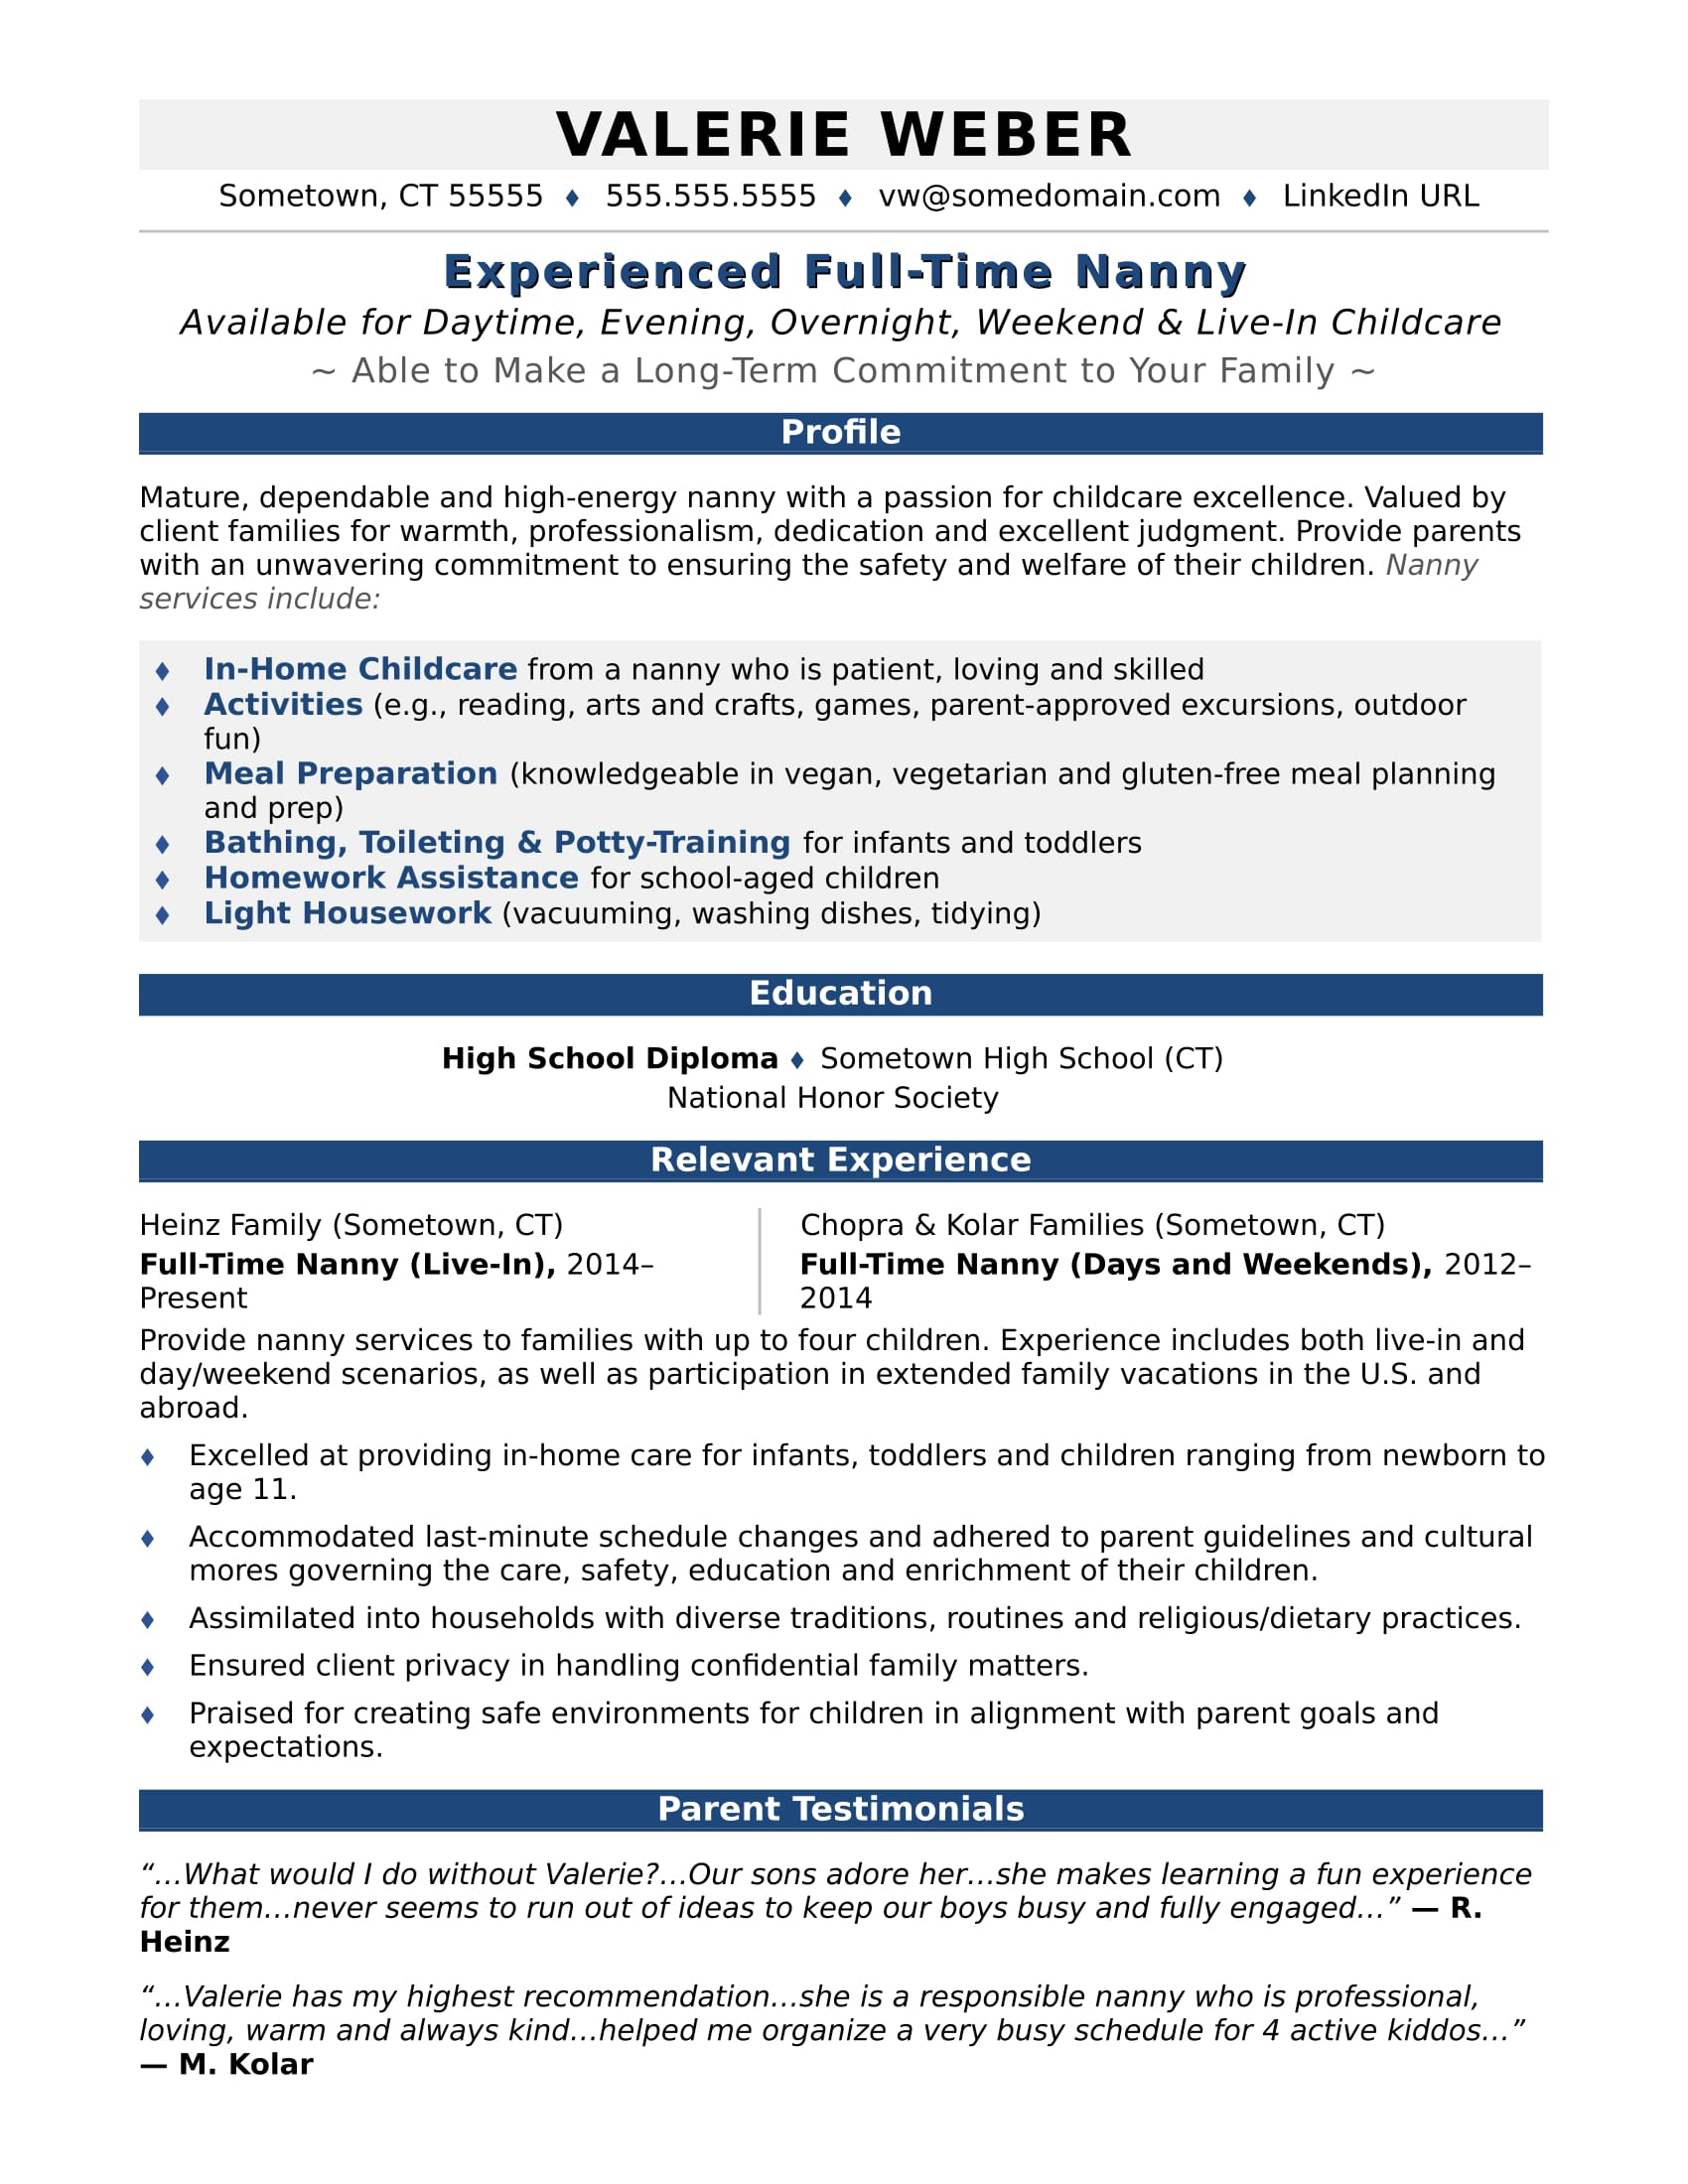 nanny resume sample monster professional templates exceptional cover letters security Resume Professional Nanny Resume Templates